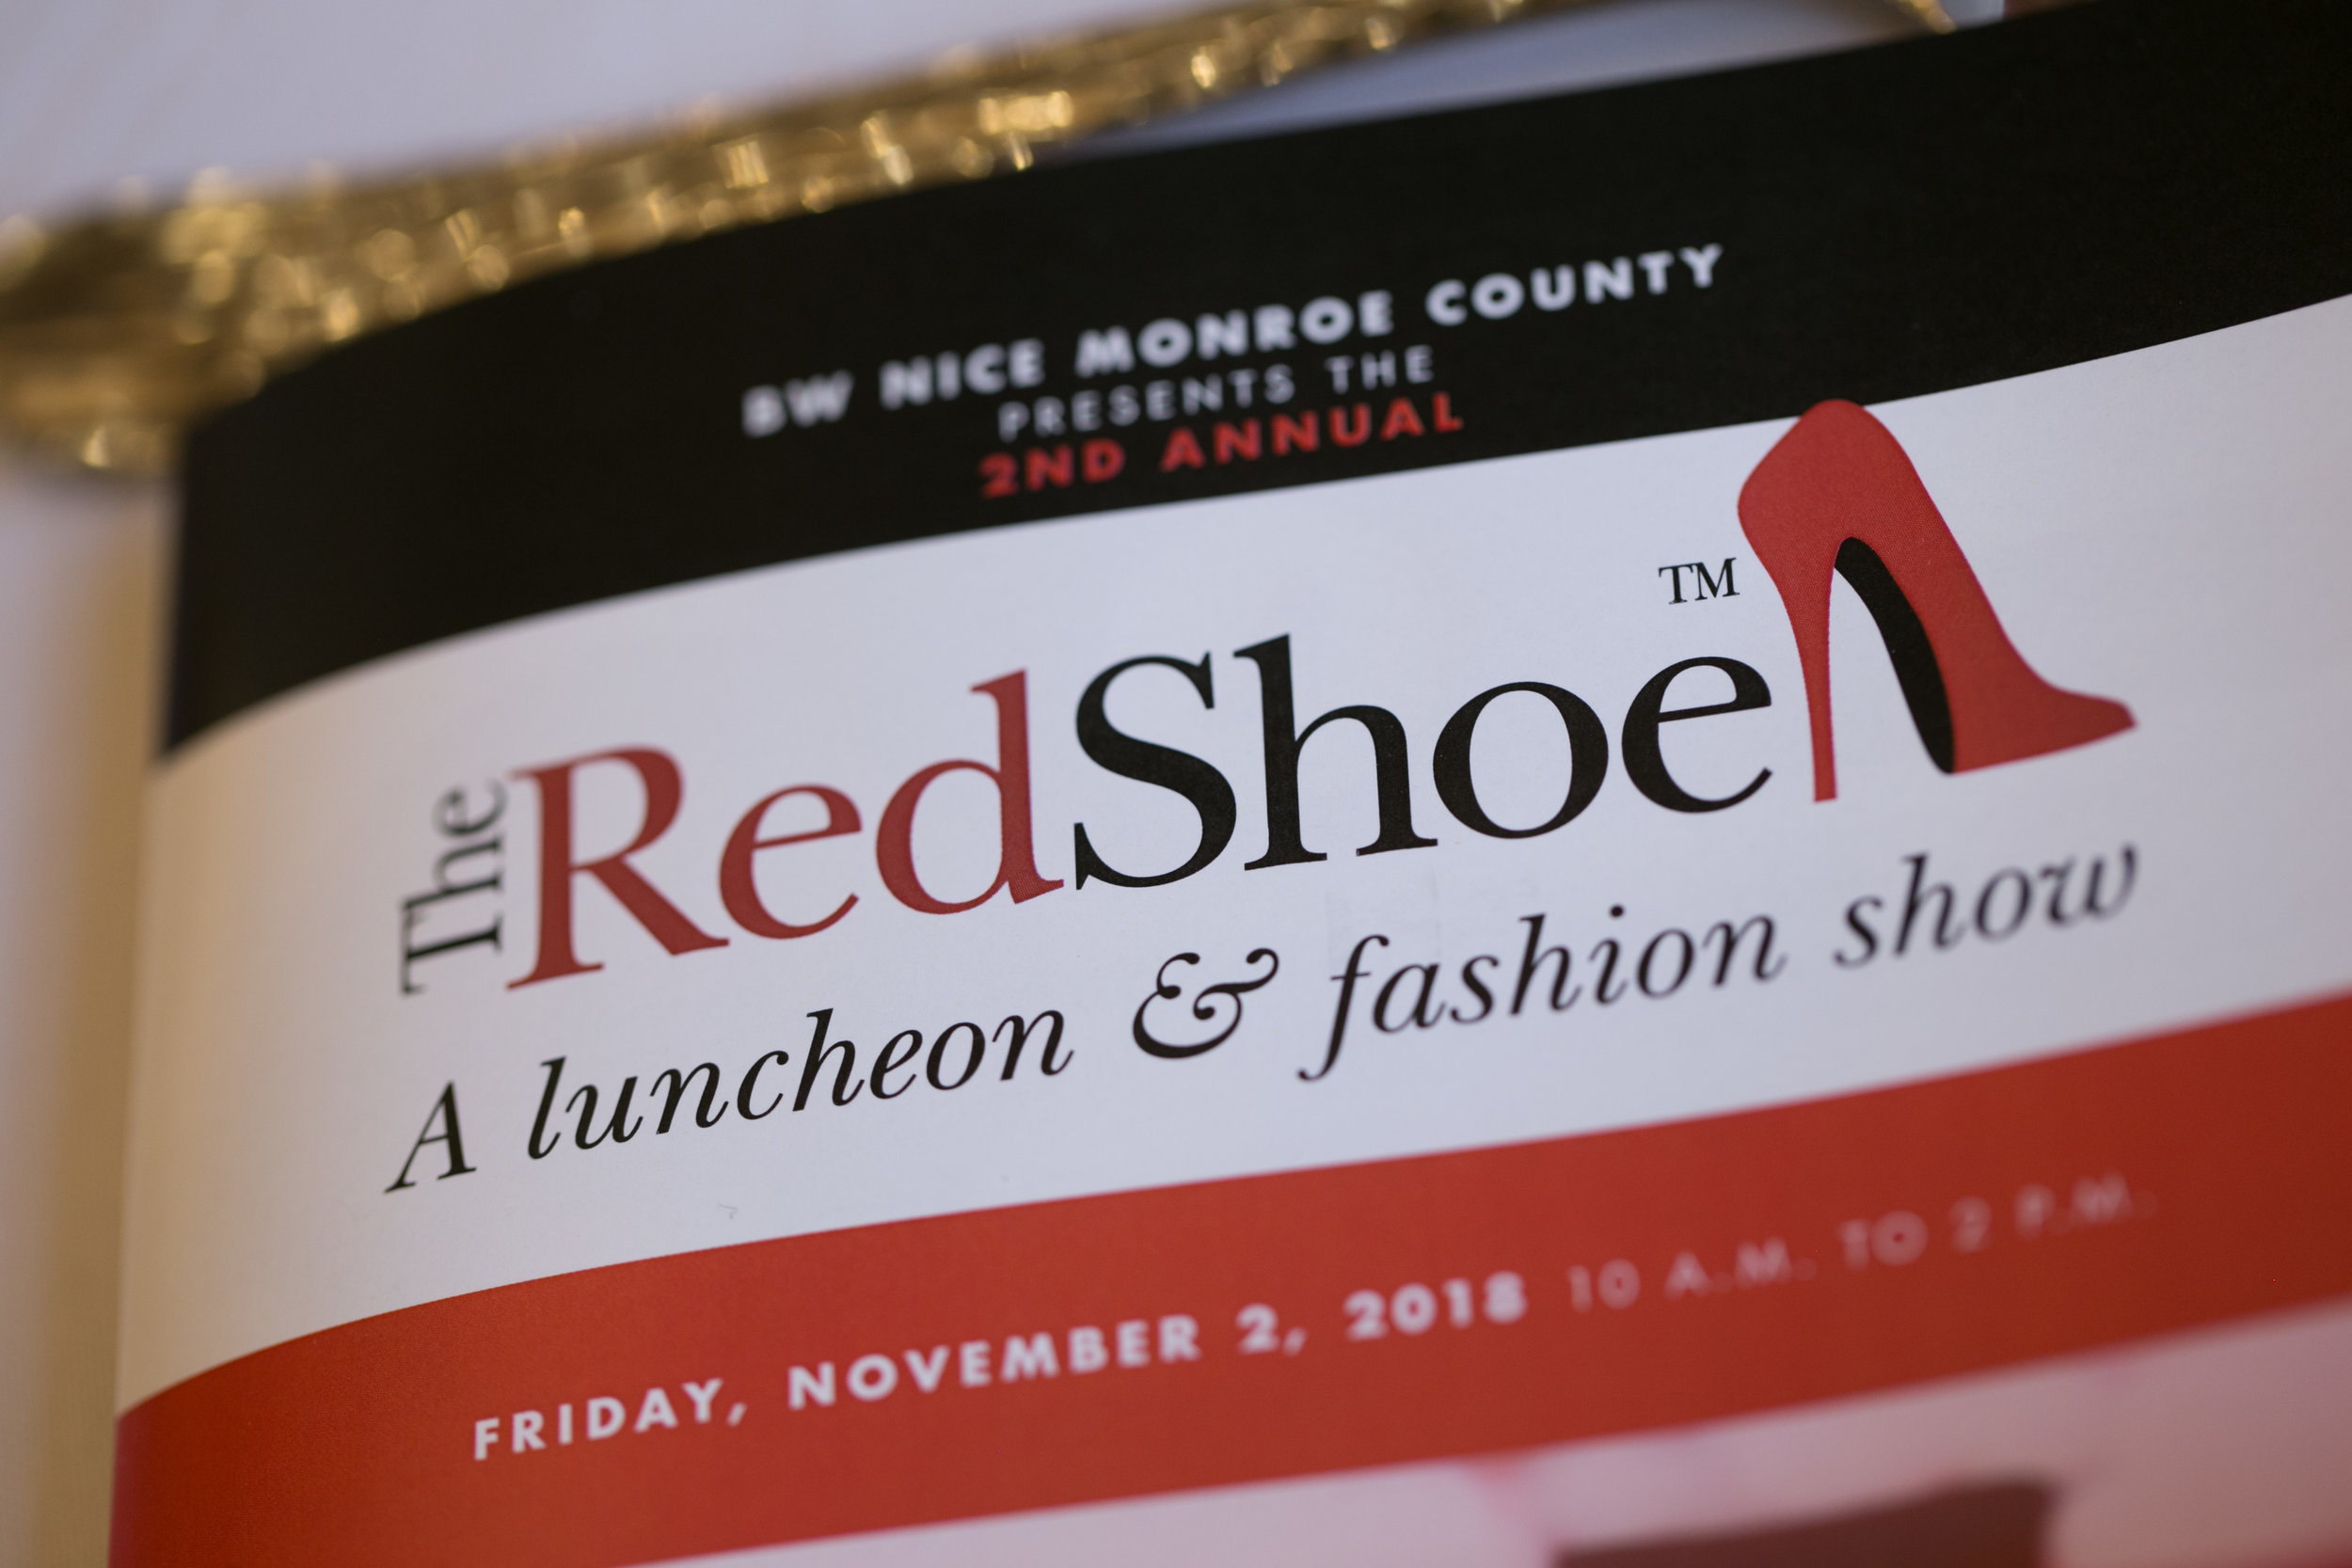 LightMaster-Studios-BWNice-Monroe-Chapter-Red-Shoes-Event-Camelback-lodge-2018-5090.jpg